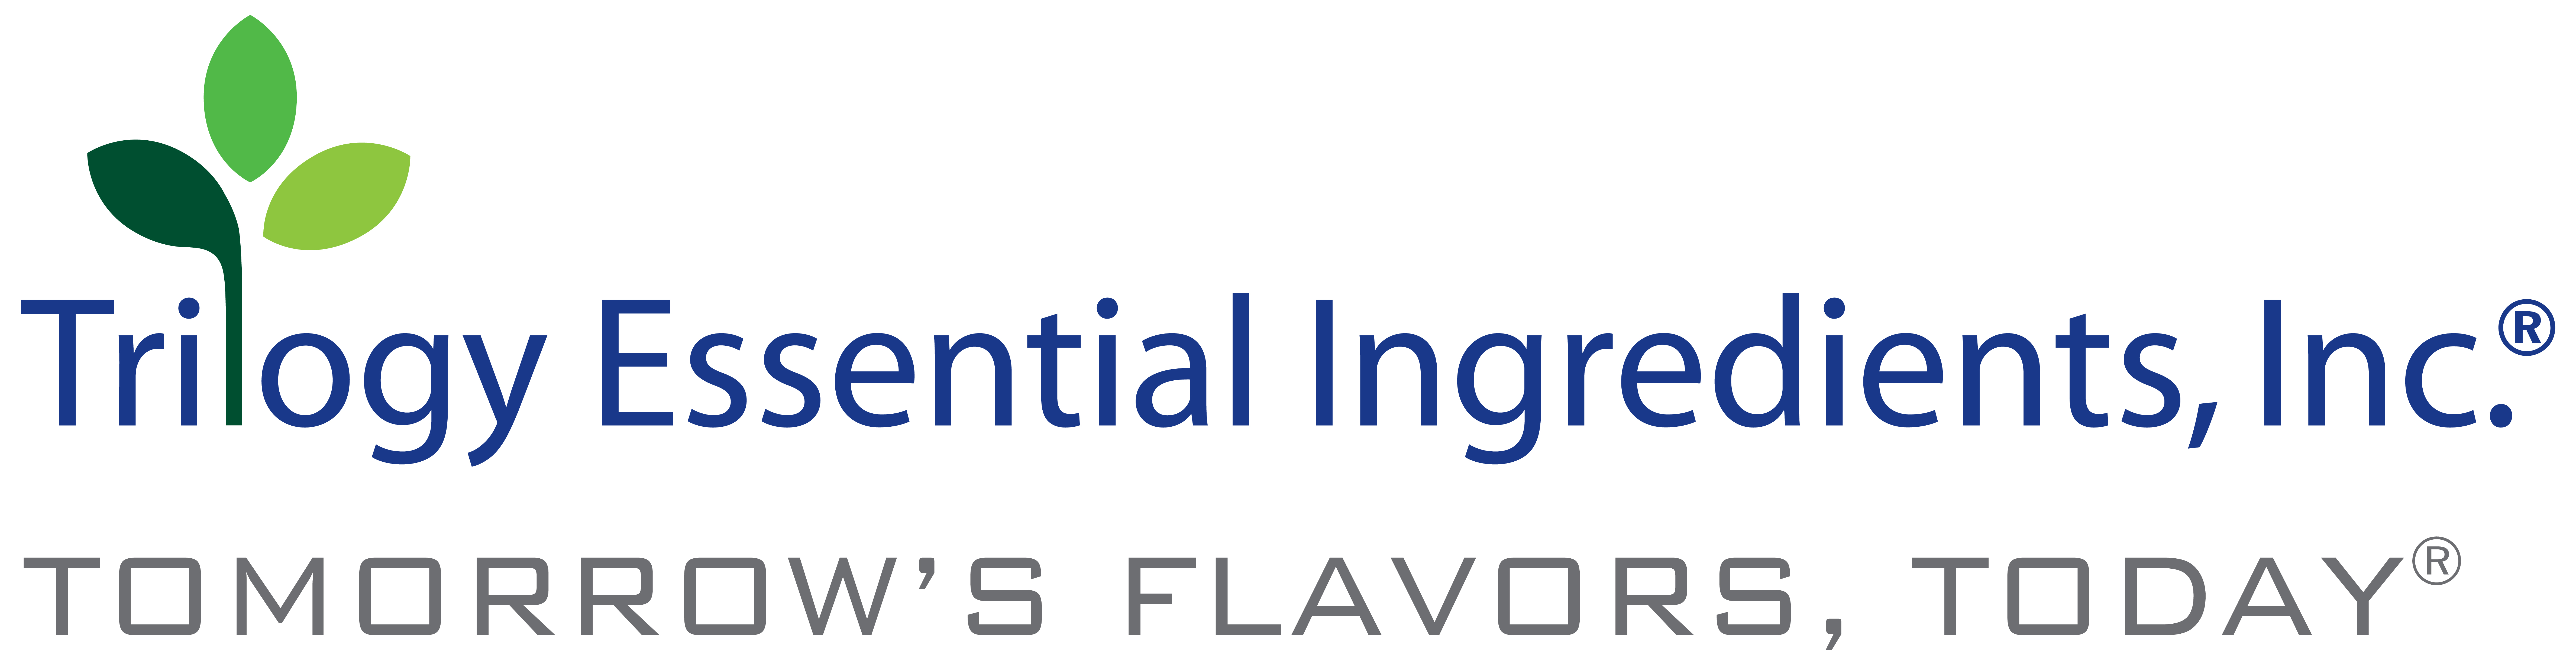 Trilogy Essential Ingredients, Inc. - sponsoring Brewbound Session Summer 2017